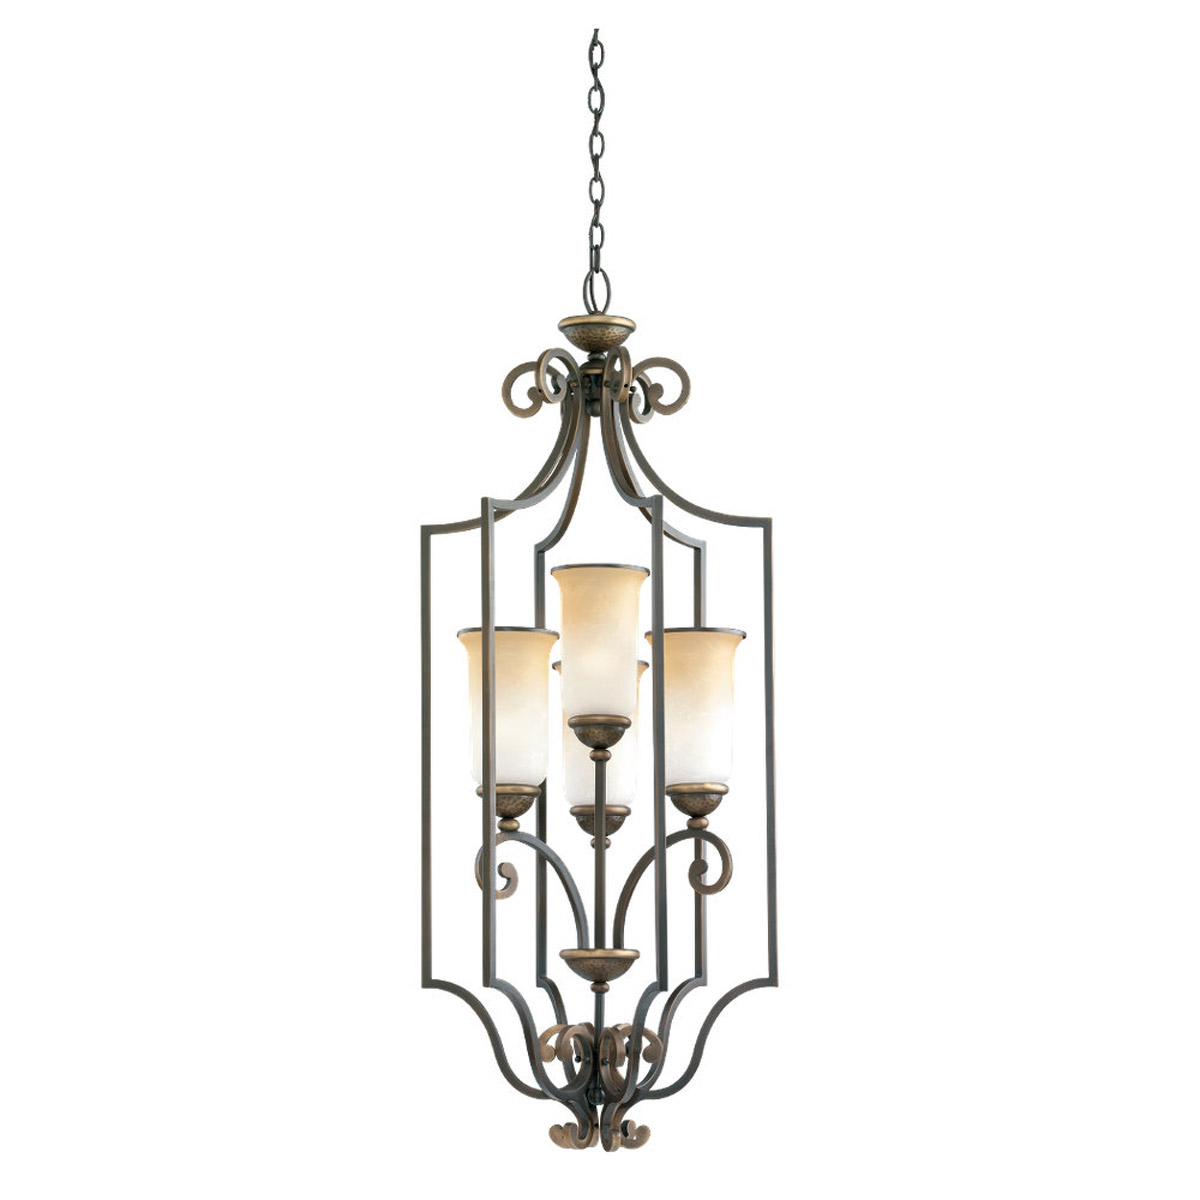 Sea Gull Lighting Brandywine 4 Light Hall / Foyer Pendant in Antique Bronze 51431-71